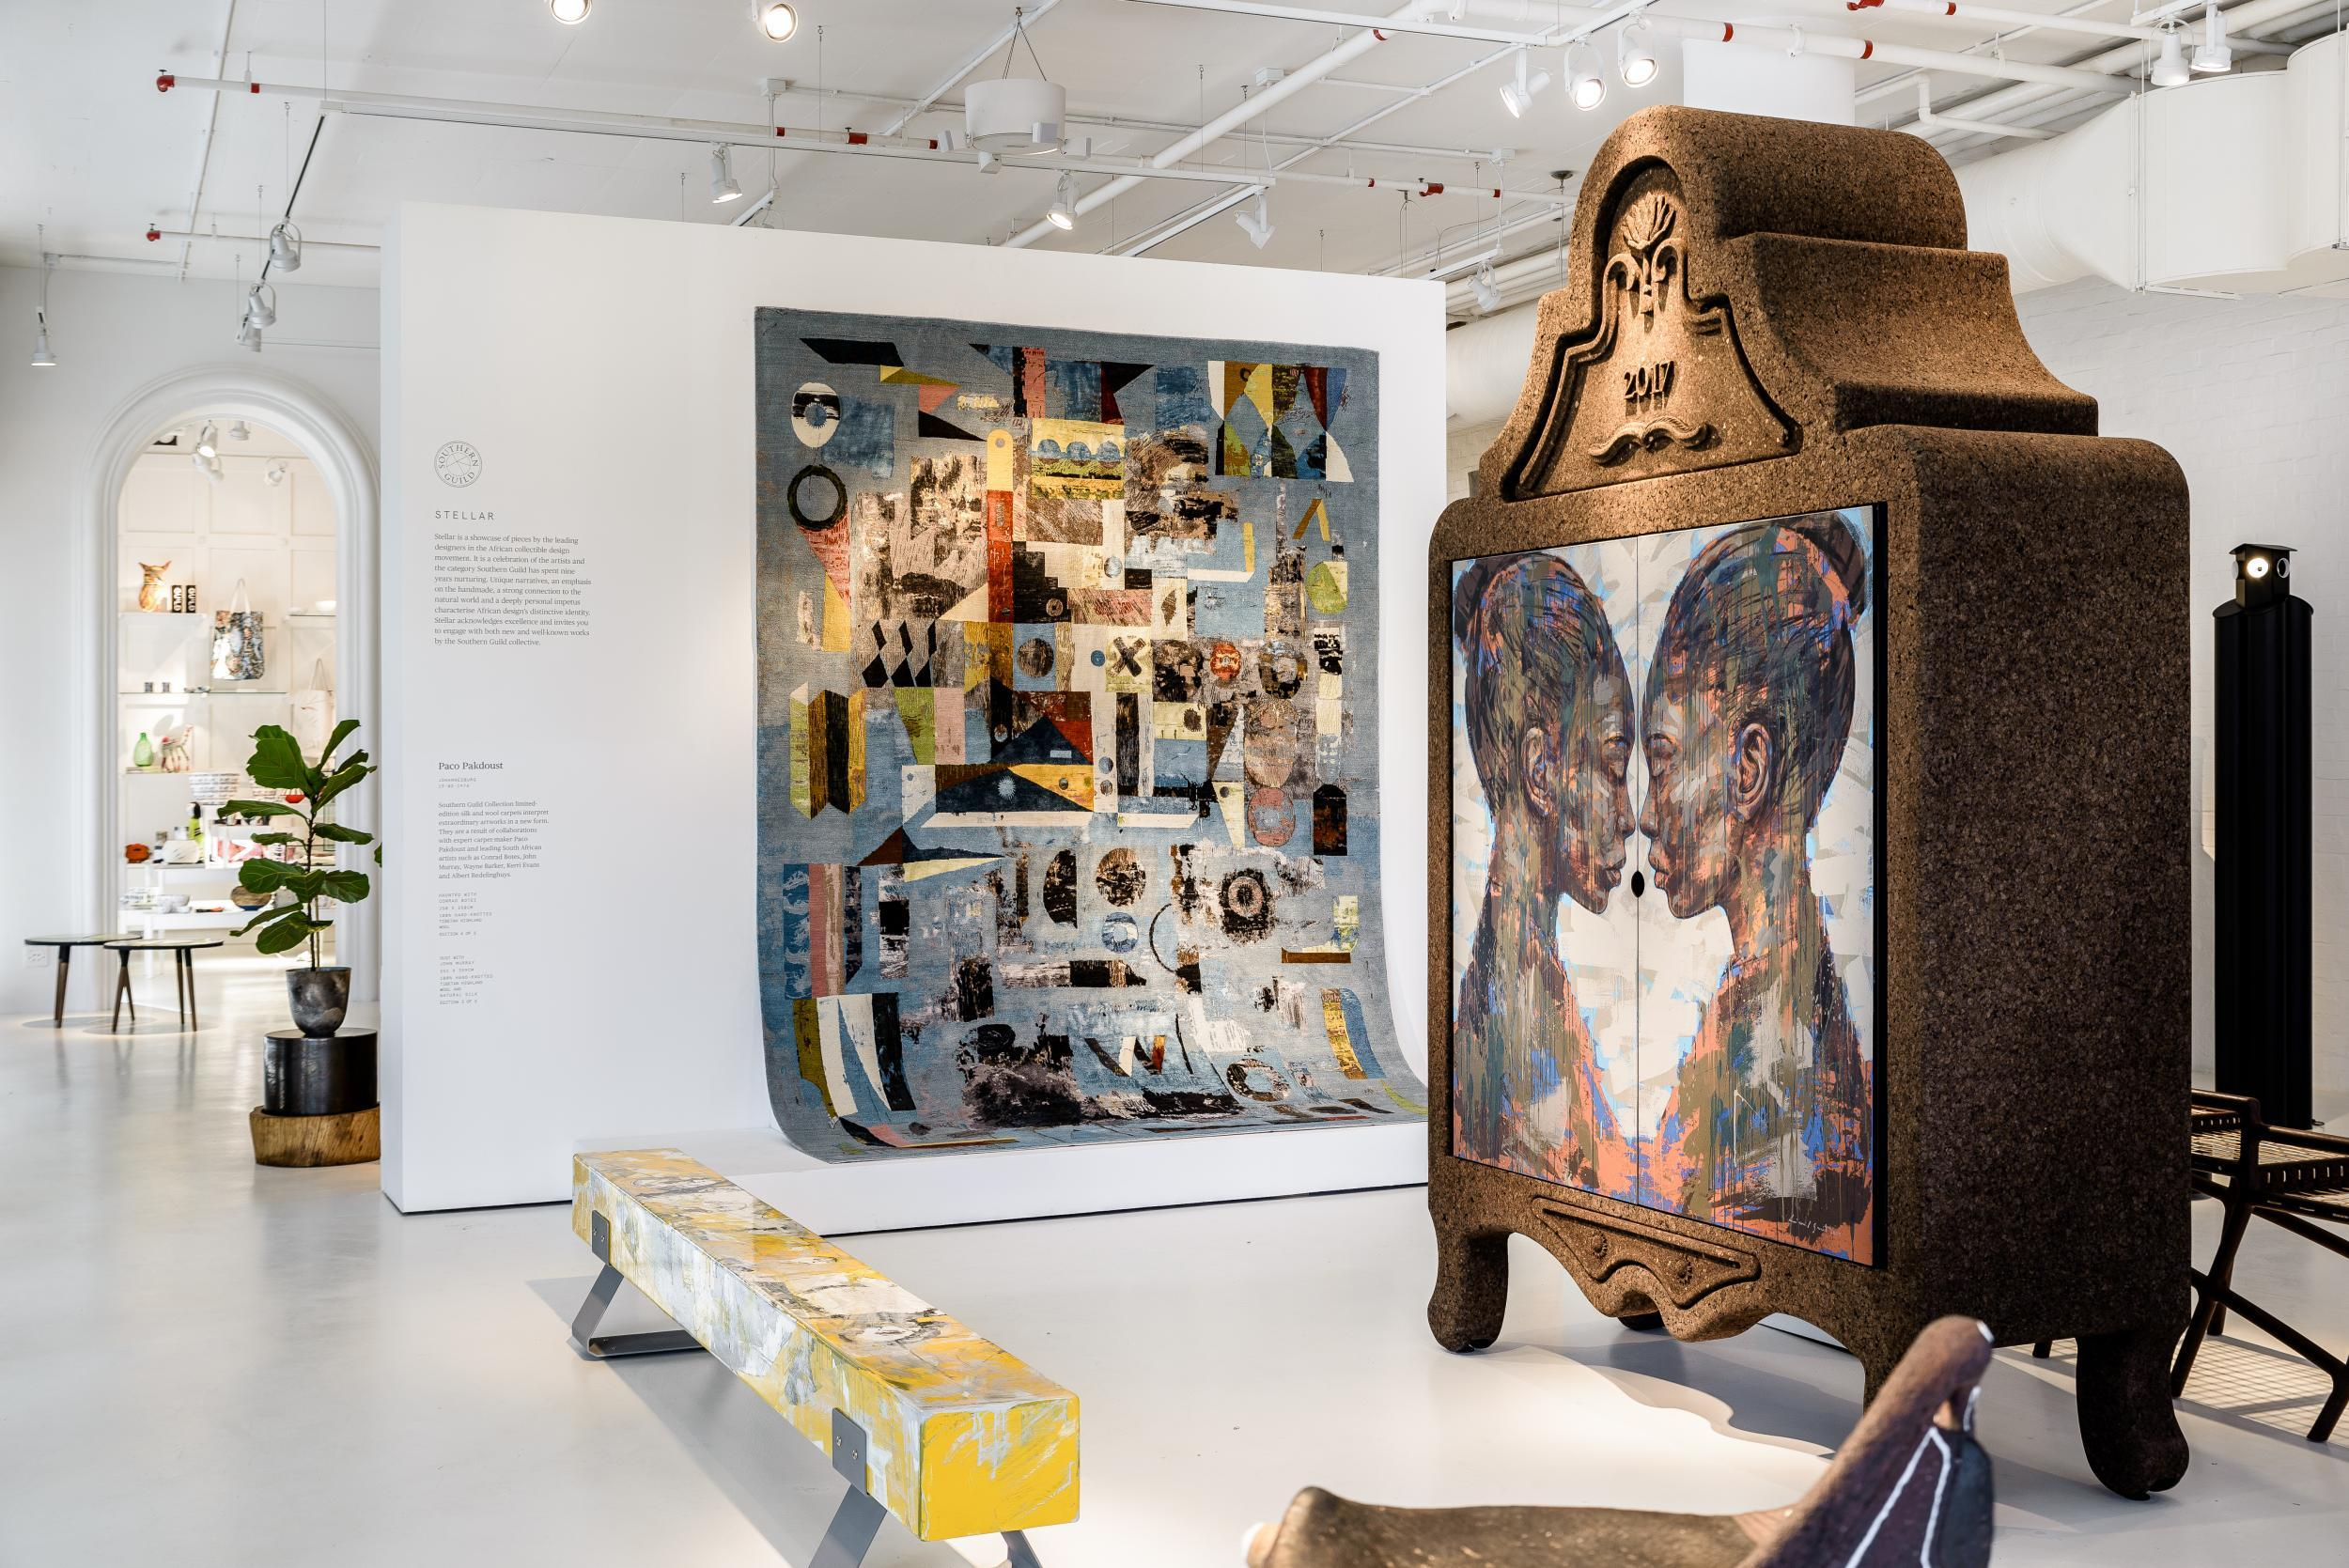 How Cape Town became Africa's modern art hub | The Independent